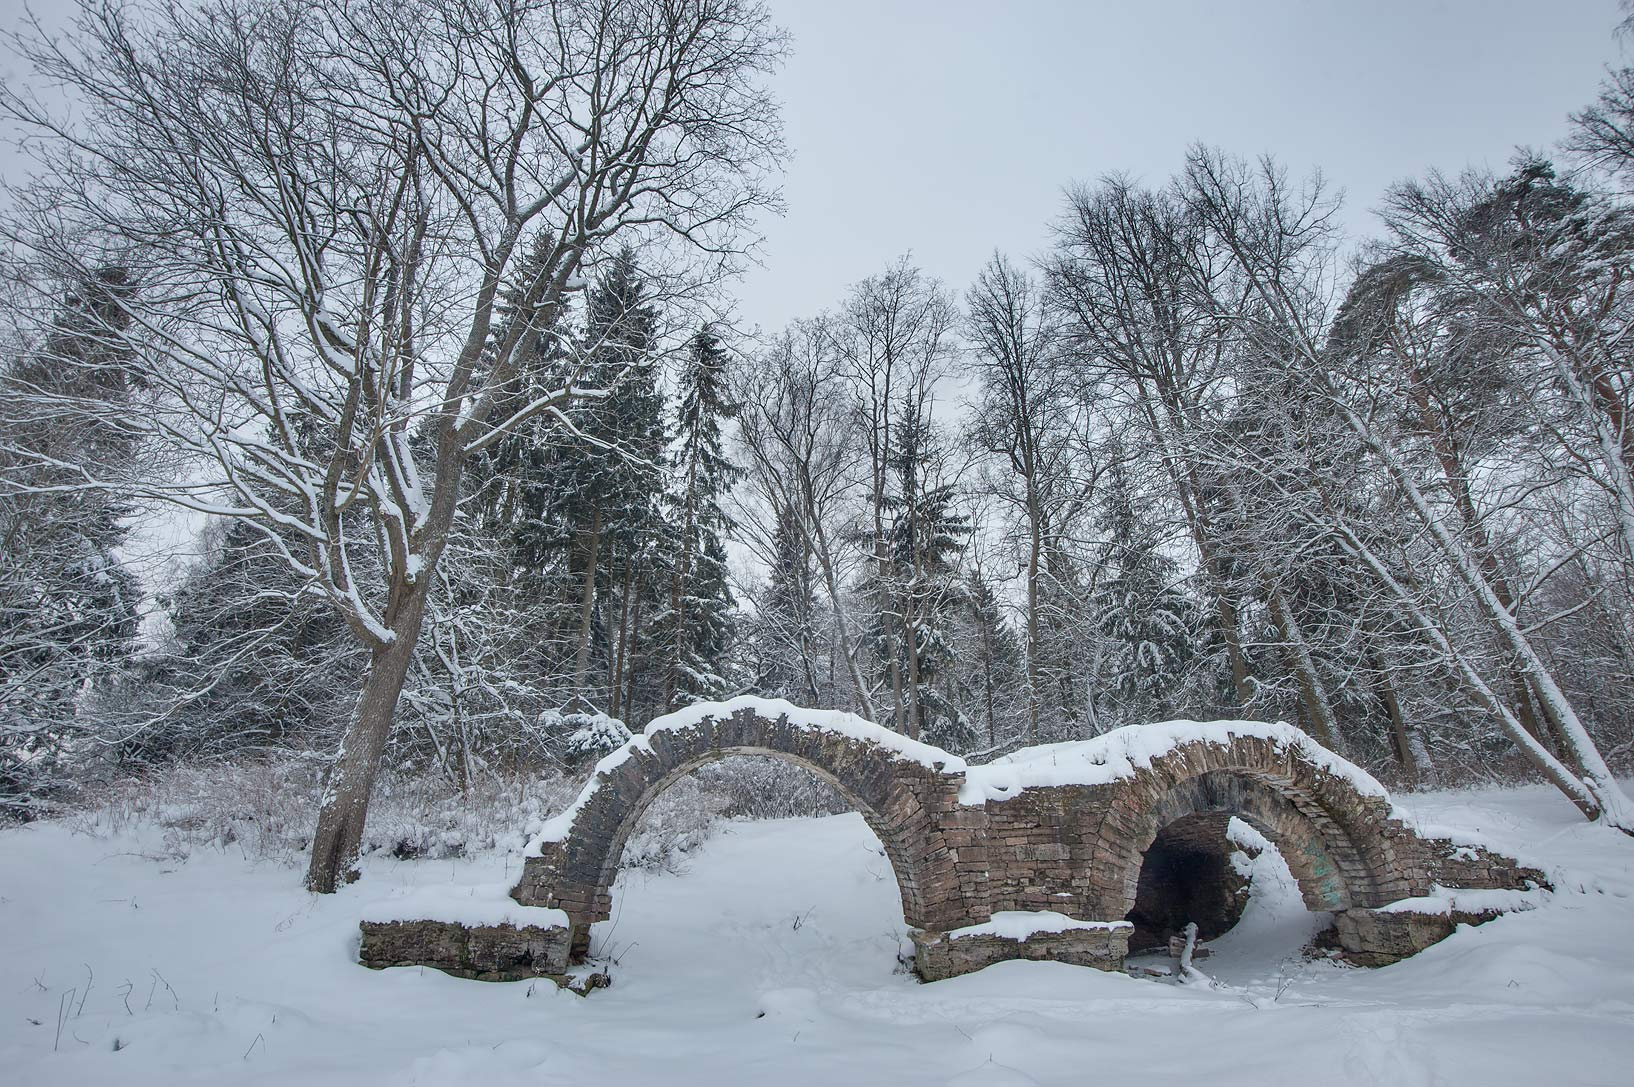 Stone arch near Elizavetin Pavilion in Pavlovsk...a suburb of St.Petersburg, Russia